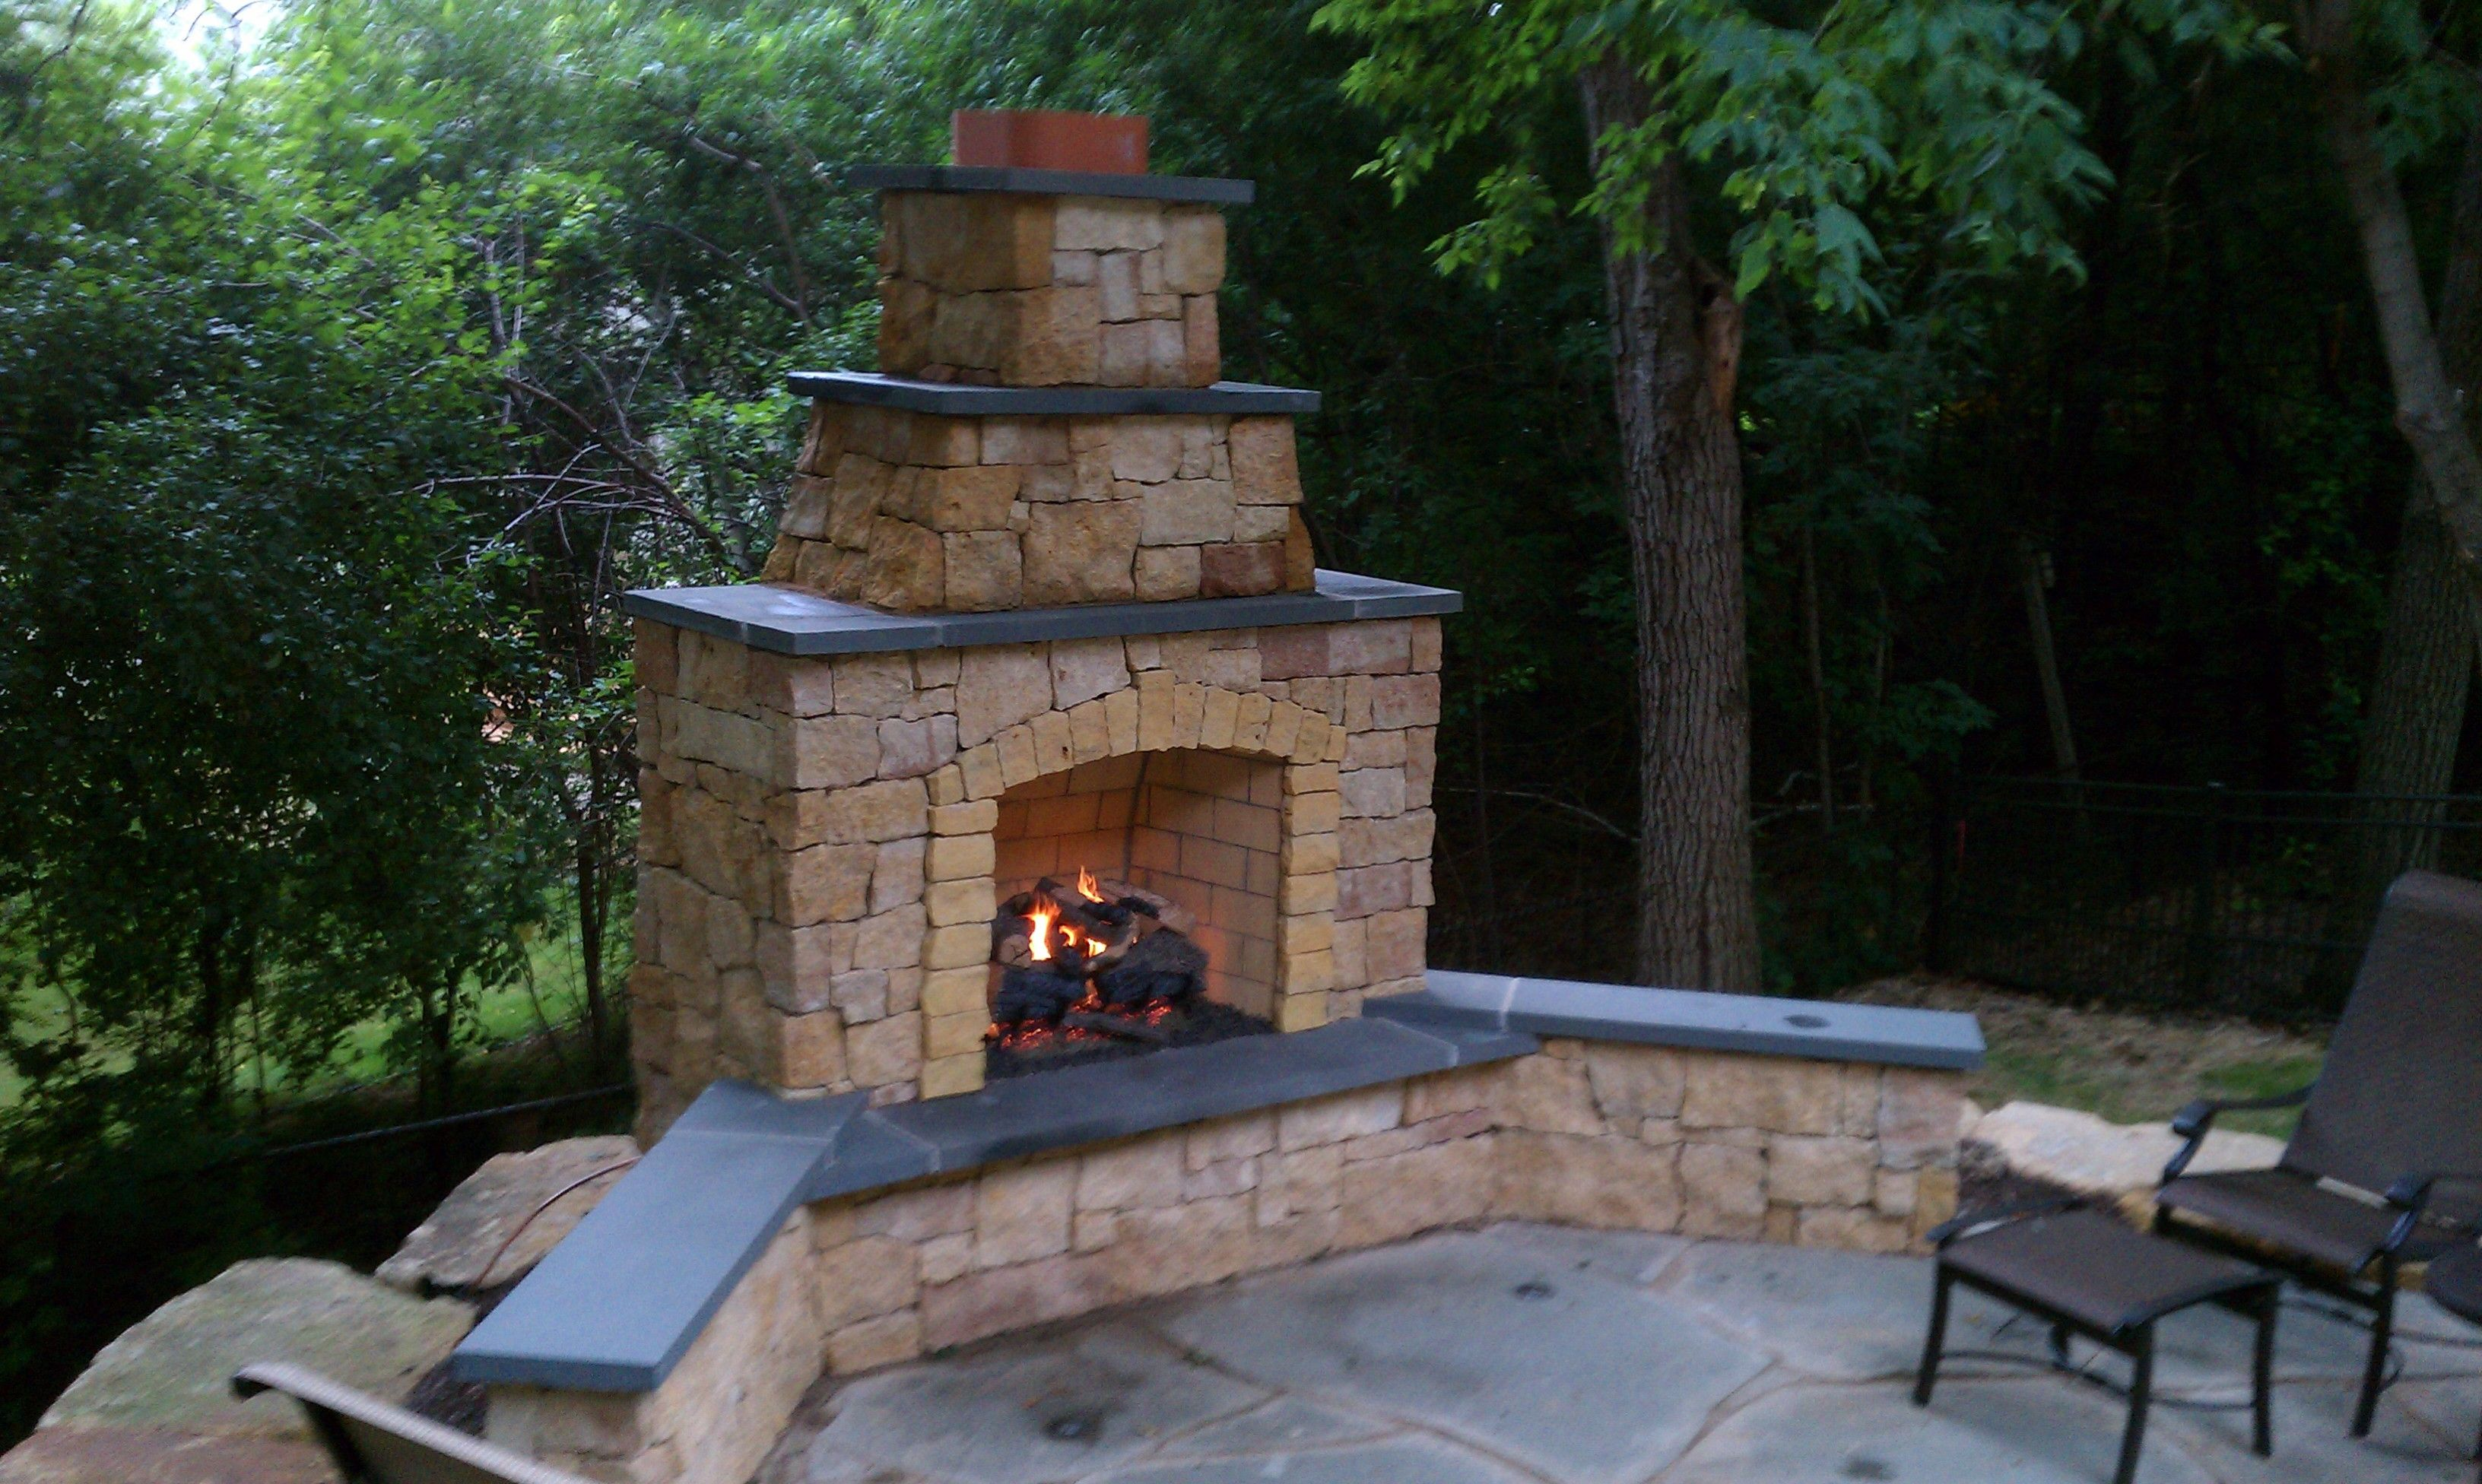 Outdoor Fireplace Chimney Cap Ideas Outdoor Gas Fireplaces Outdoor Gas Fireplace Outdoor Fireplace Kits Outdoor Fireplace